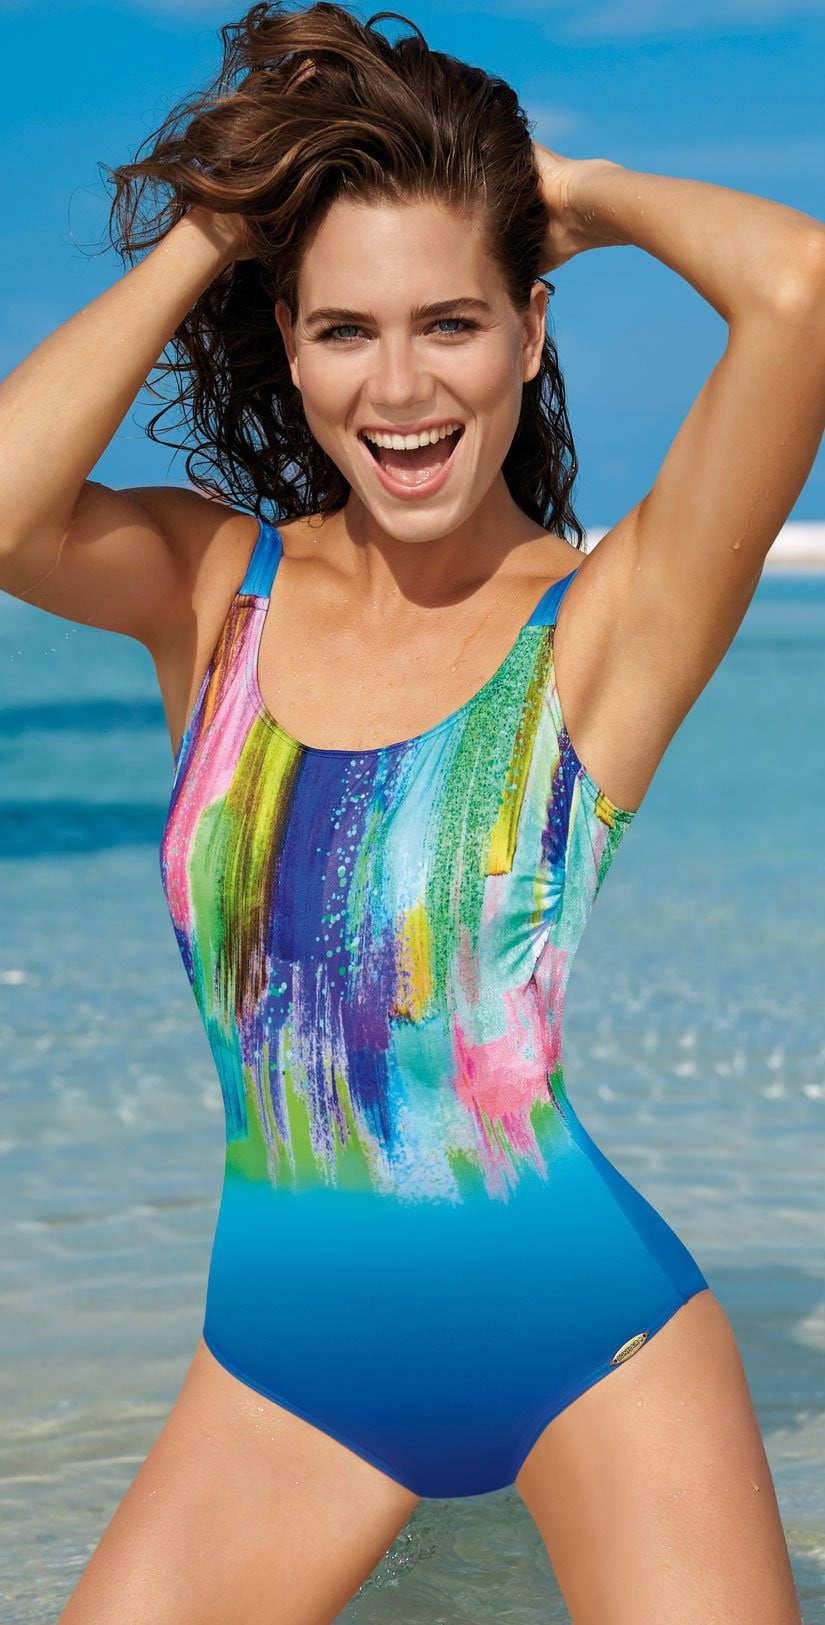 Sunflair Fun In The Sun Mastectomy One Piece Swimsuit 22303 26: